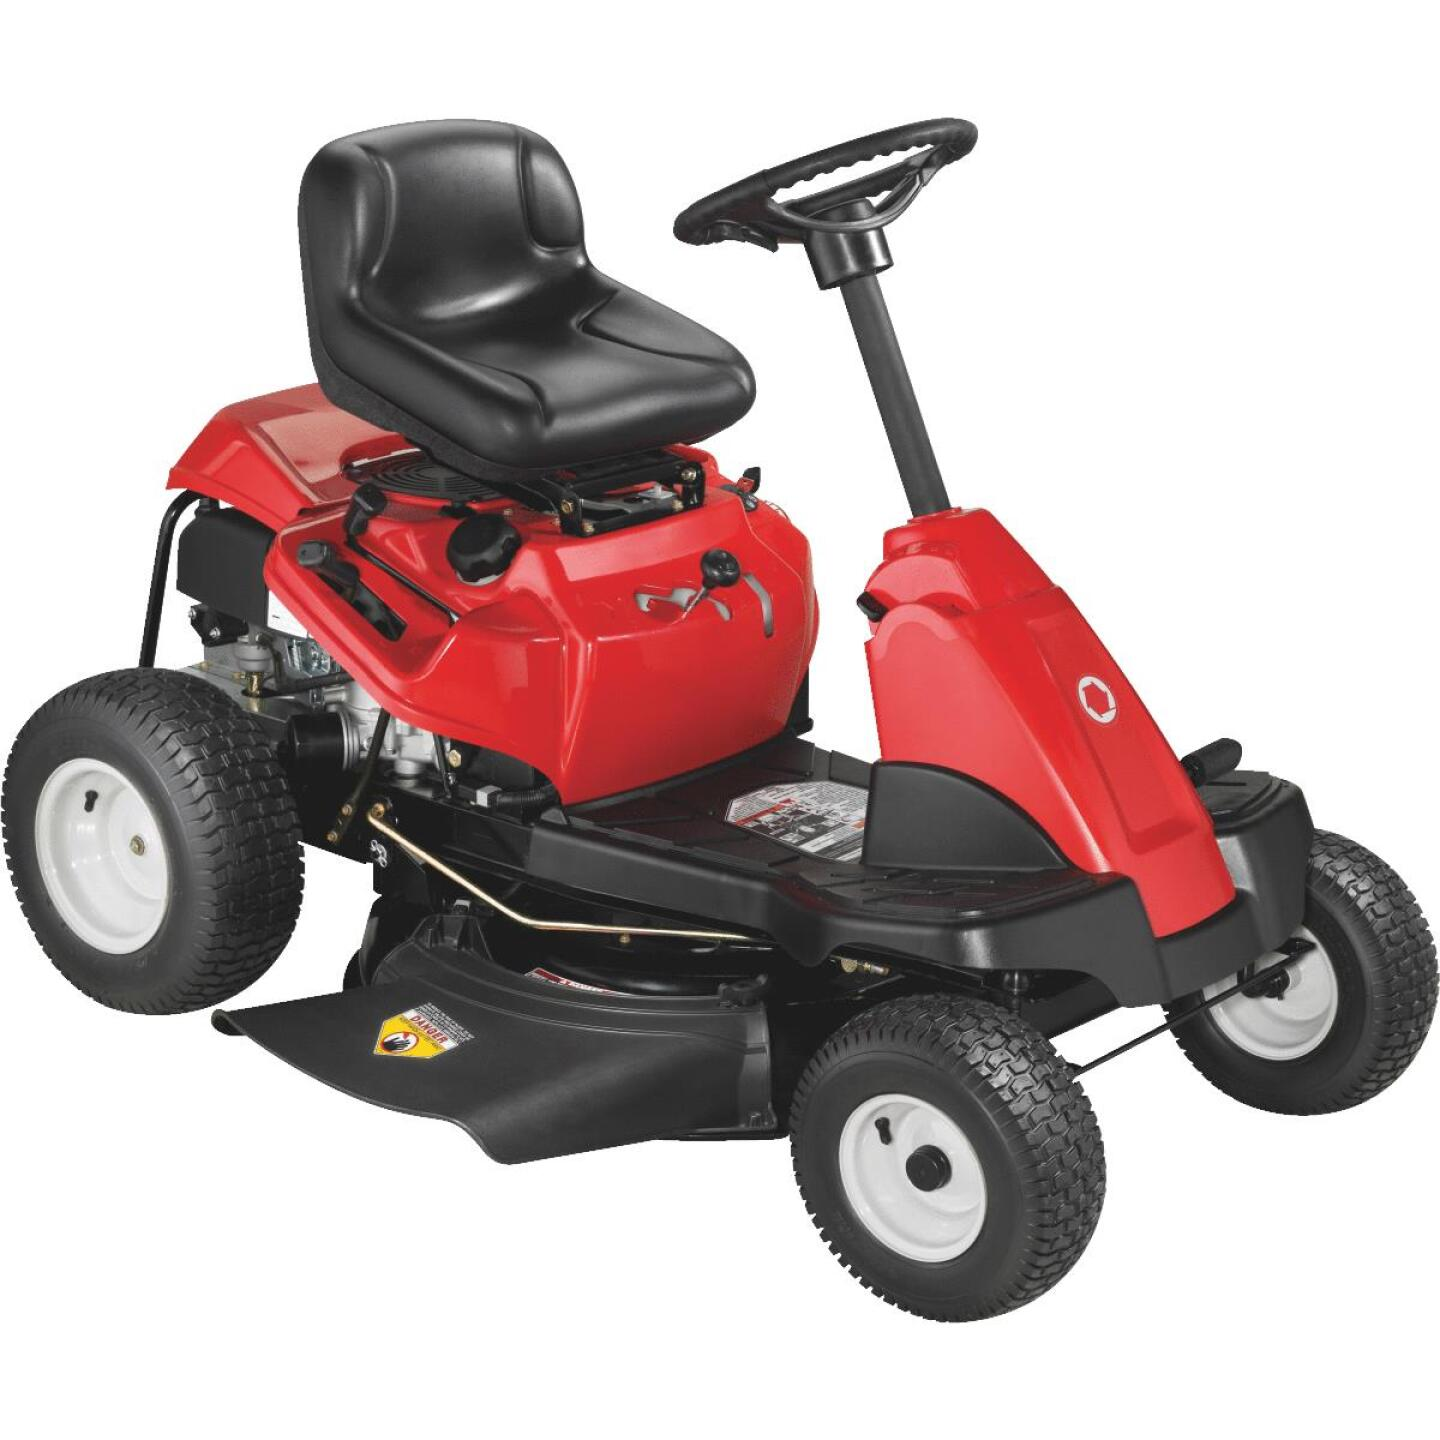 Troy-Bilt 30 In. 382cc Troy-Bilt Neighborhood Lawn Tractor Image 1